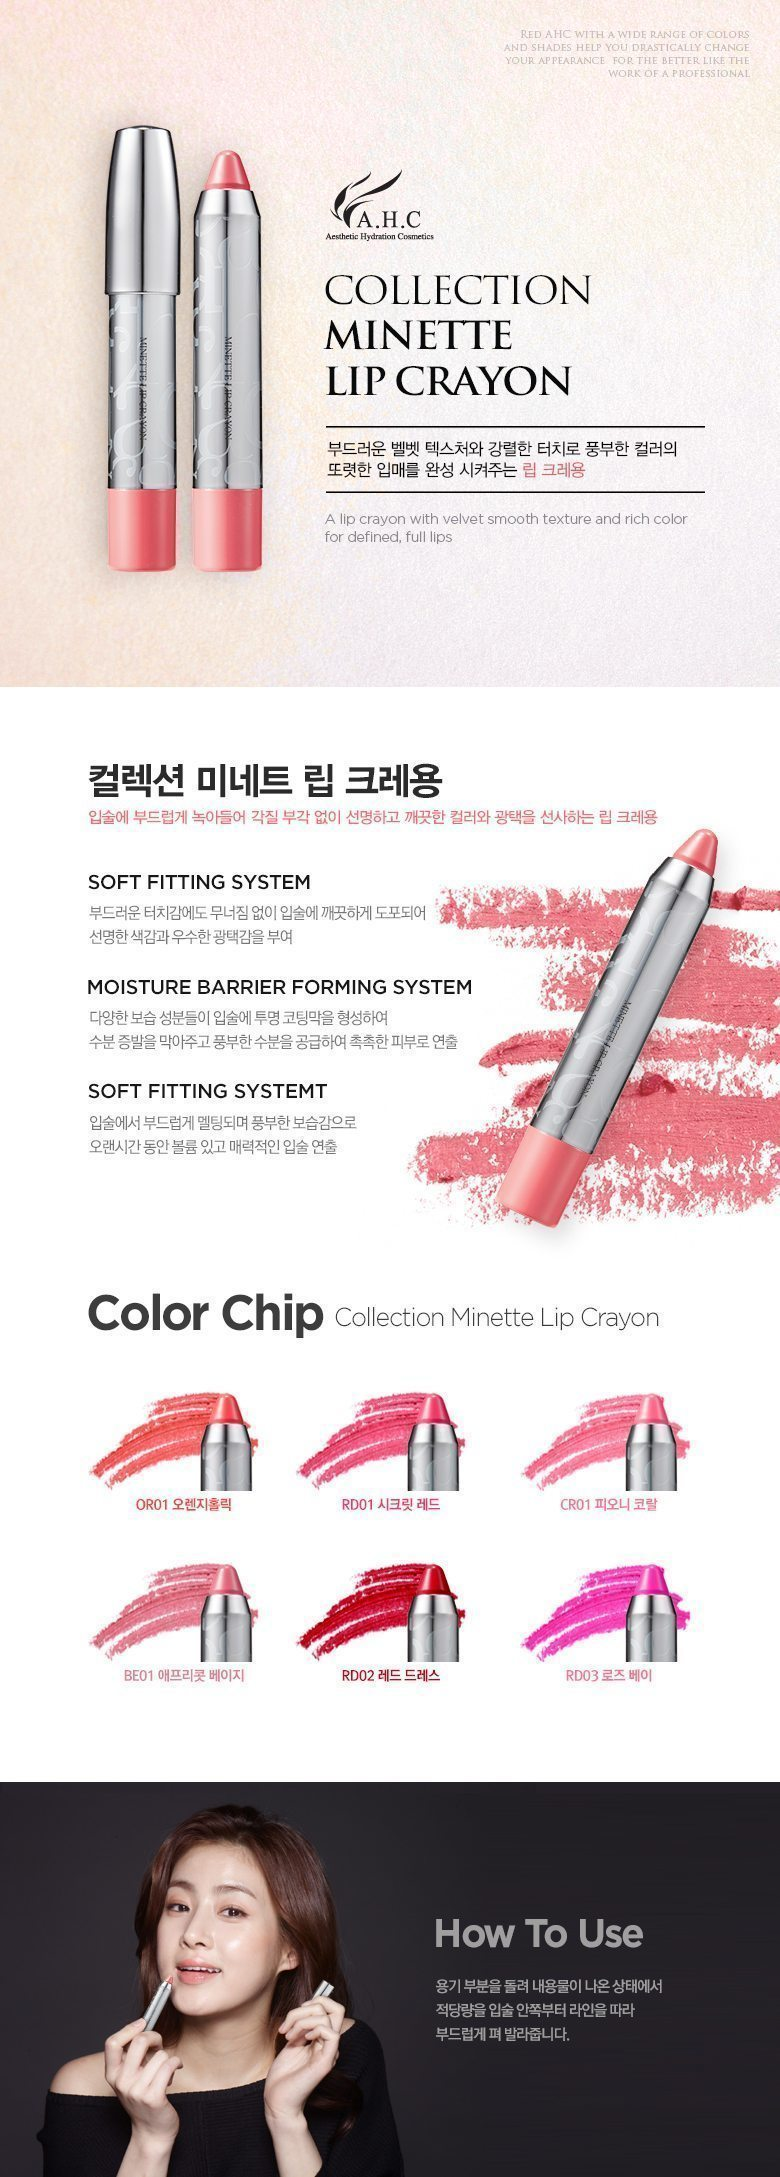 AHC Collection Minette Lip Crayon 9g malaysia singapore indonesia